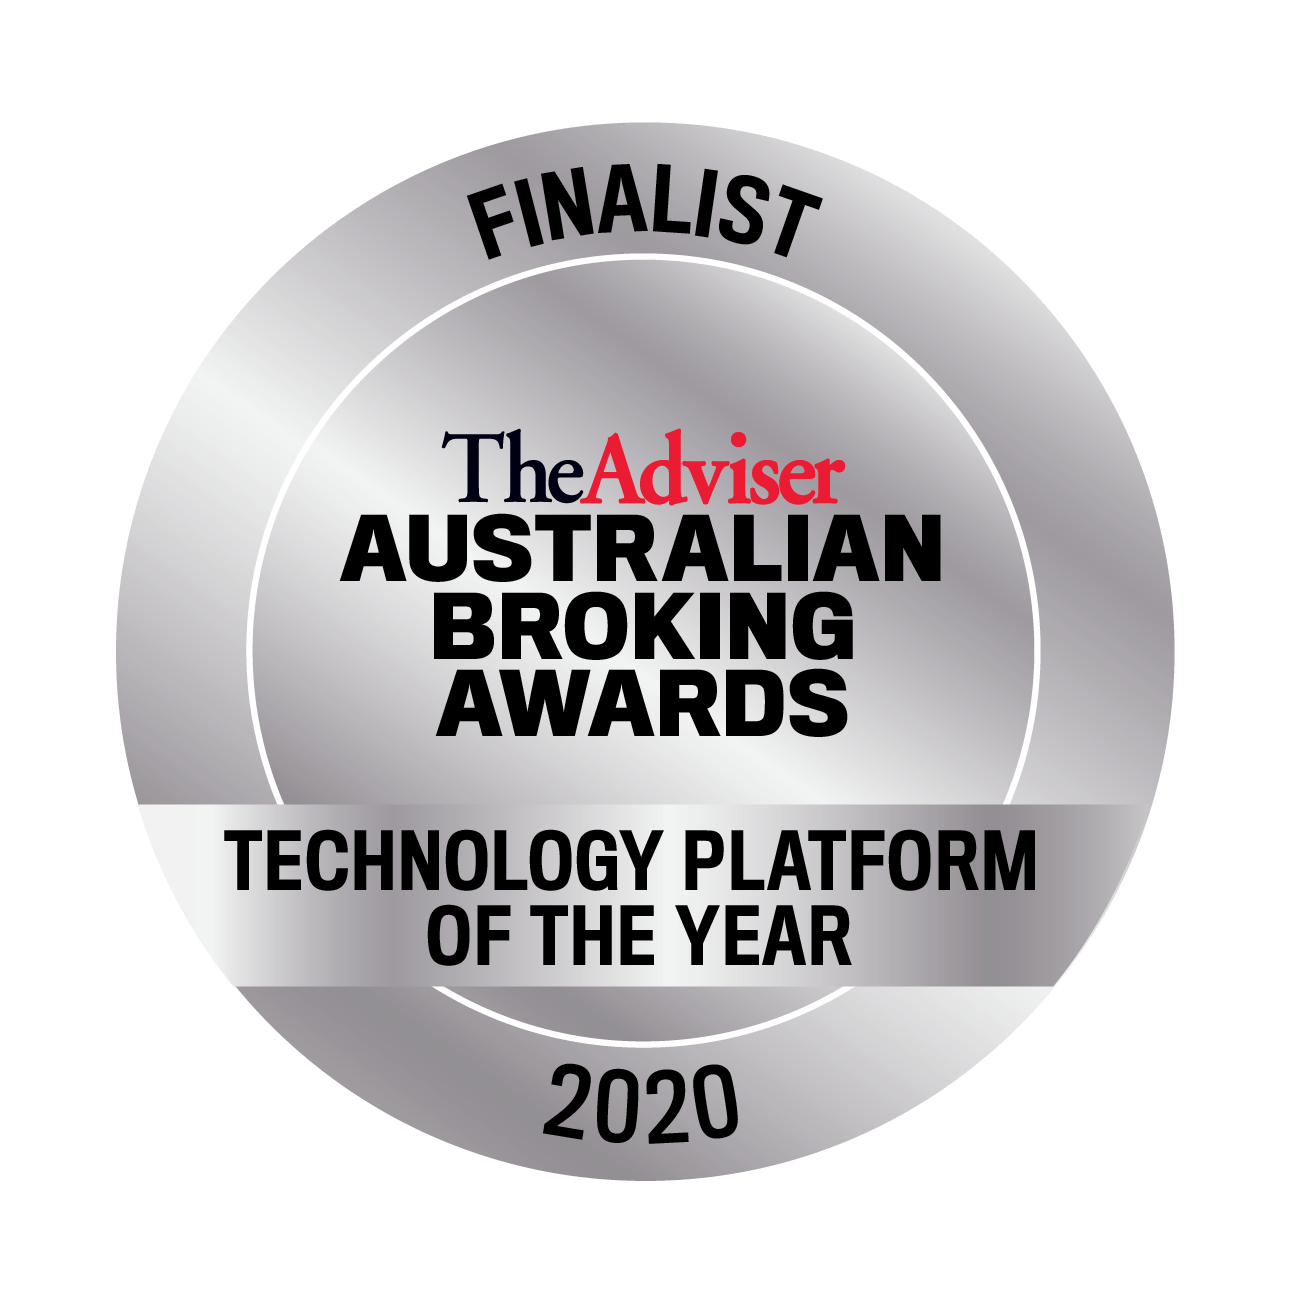 The Adviser - Australian Broking Awards 2020